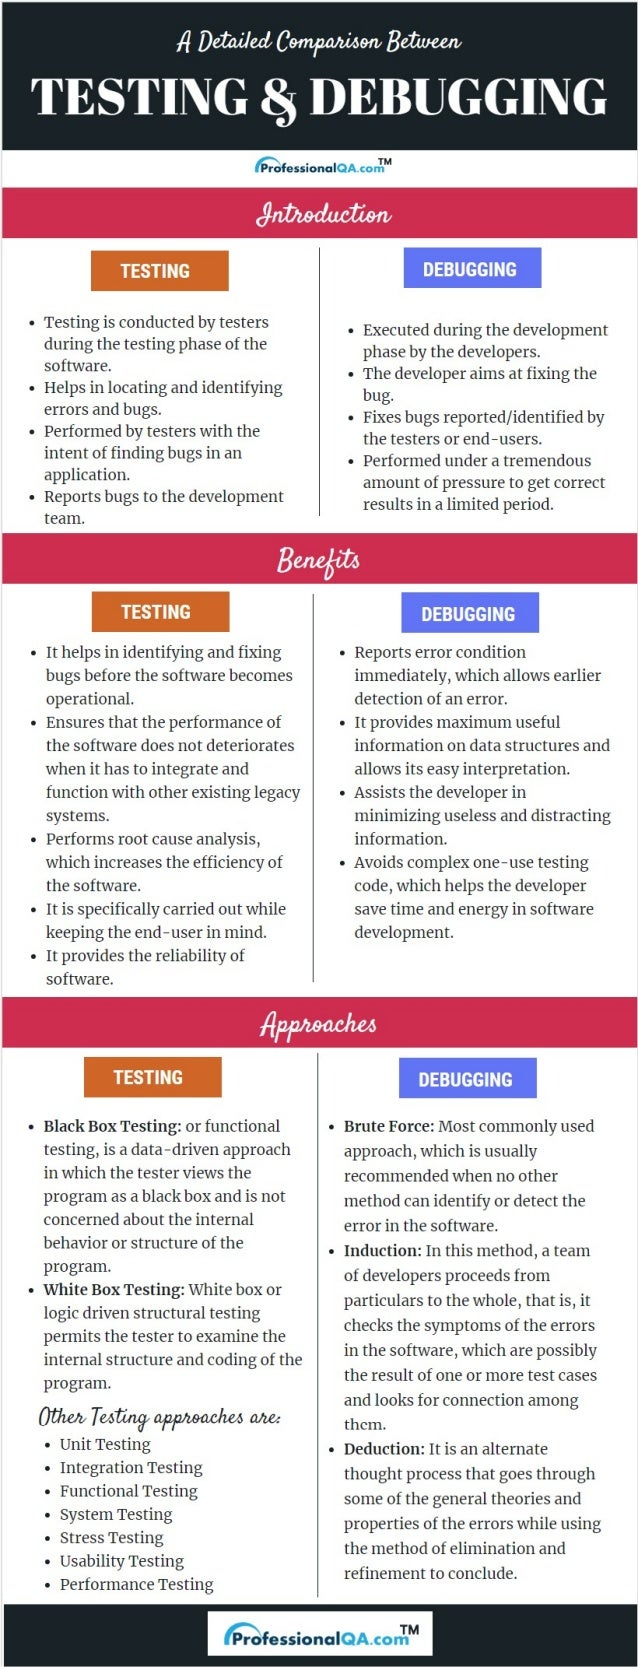 A Detailed Comparison of Testing and Debugging: